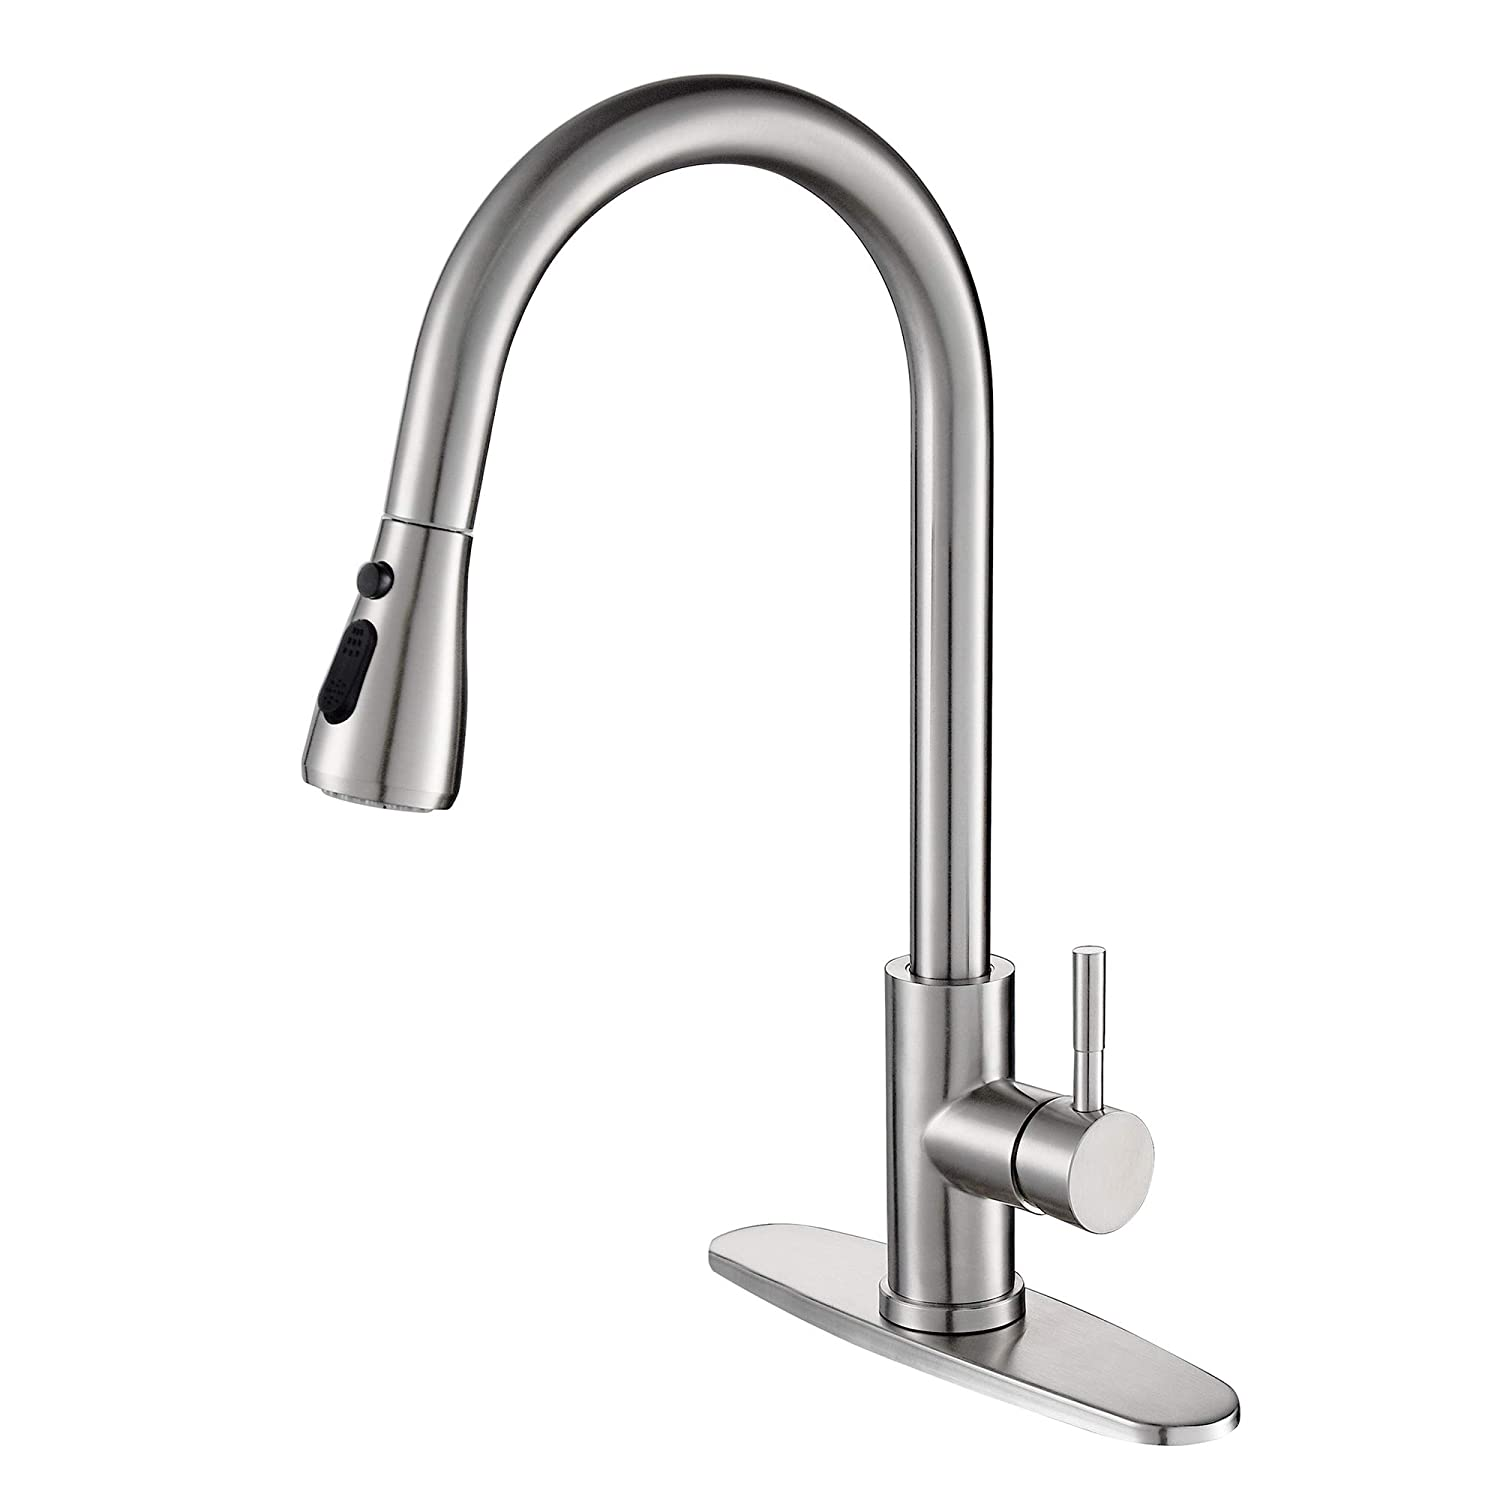 Kitchen Faucet Single Handle High Arc Faucet with Pull Down Sprayer, Naturous Single Level Stainless Steel Kitchen Sink Faucets with Pull Down Sprayer,Brushed Nickel